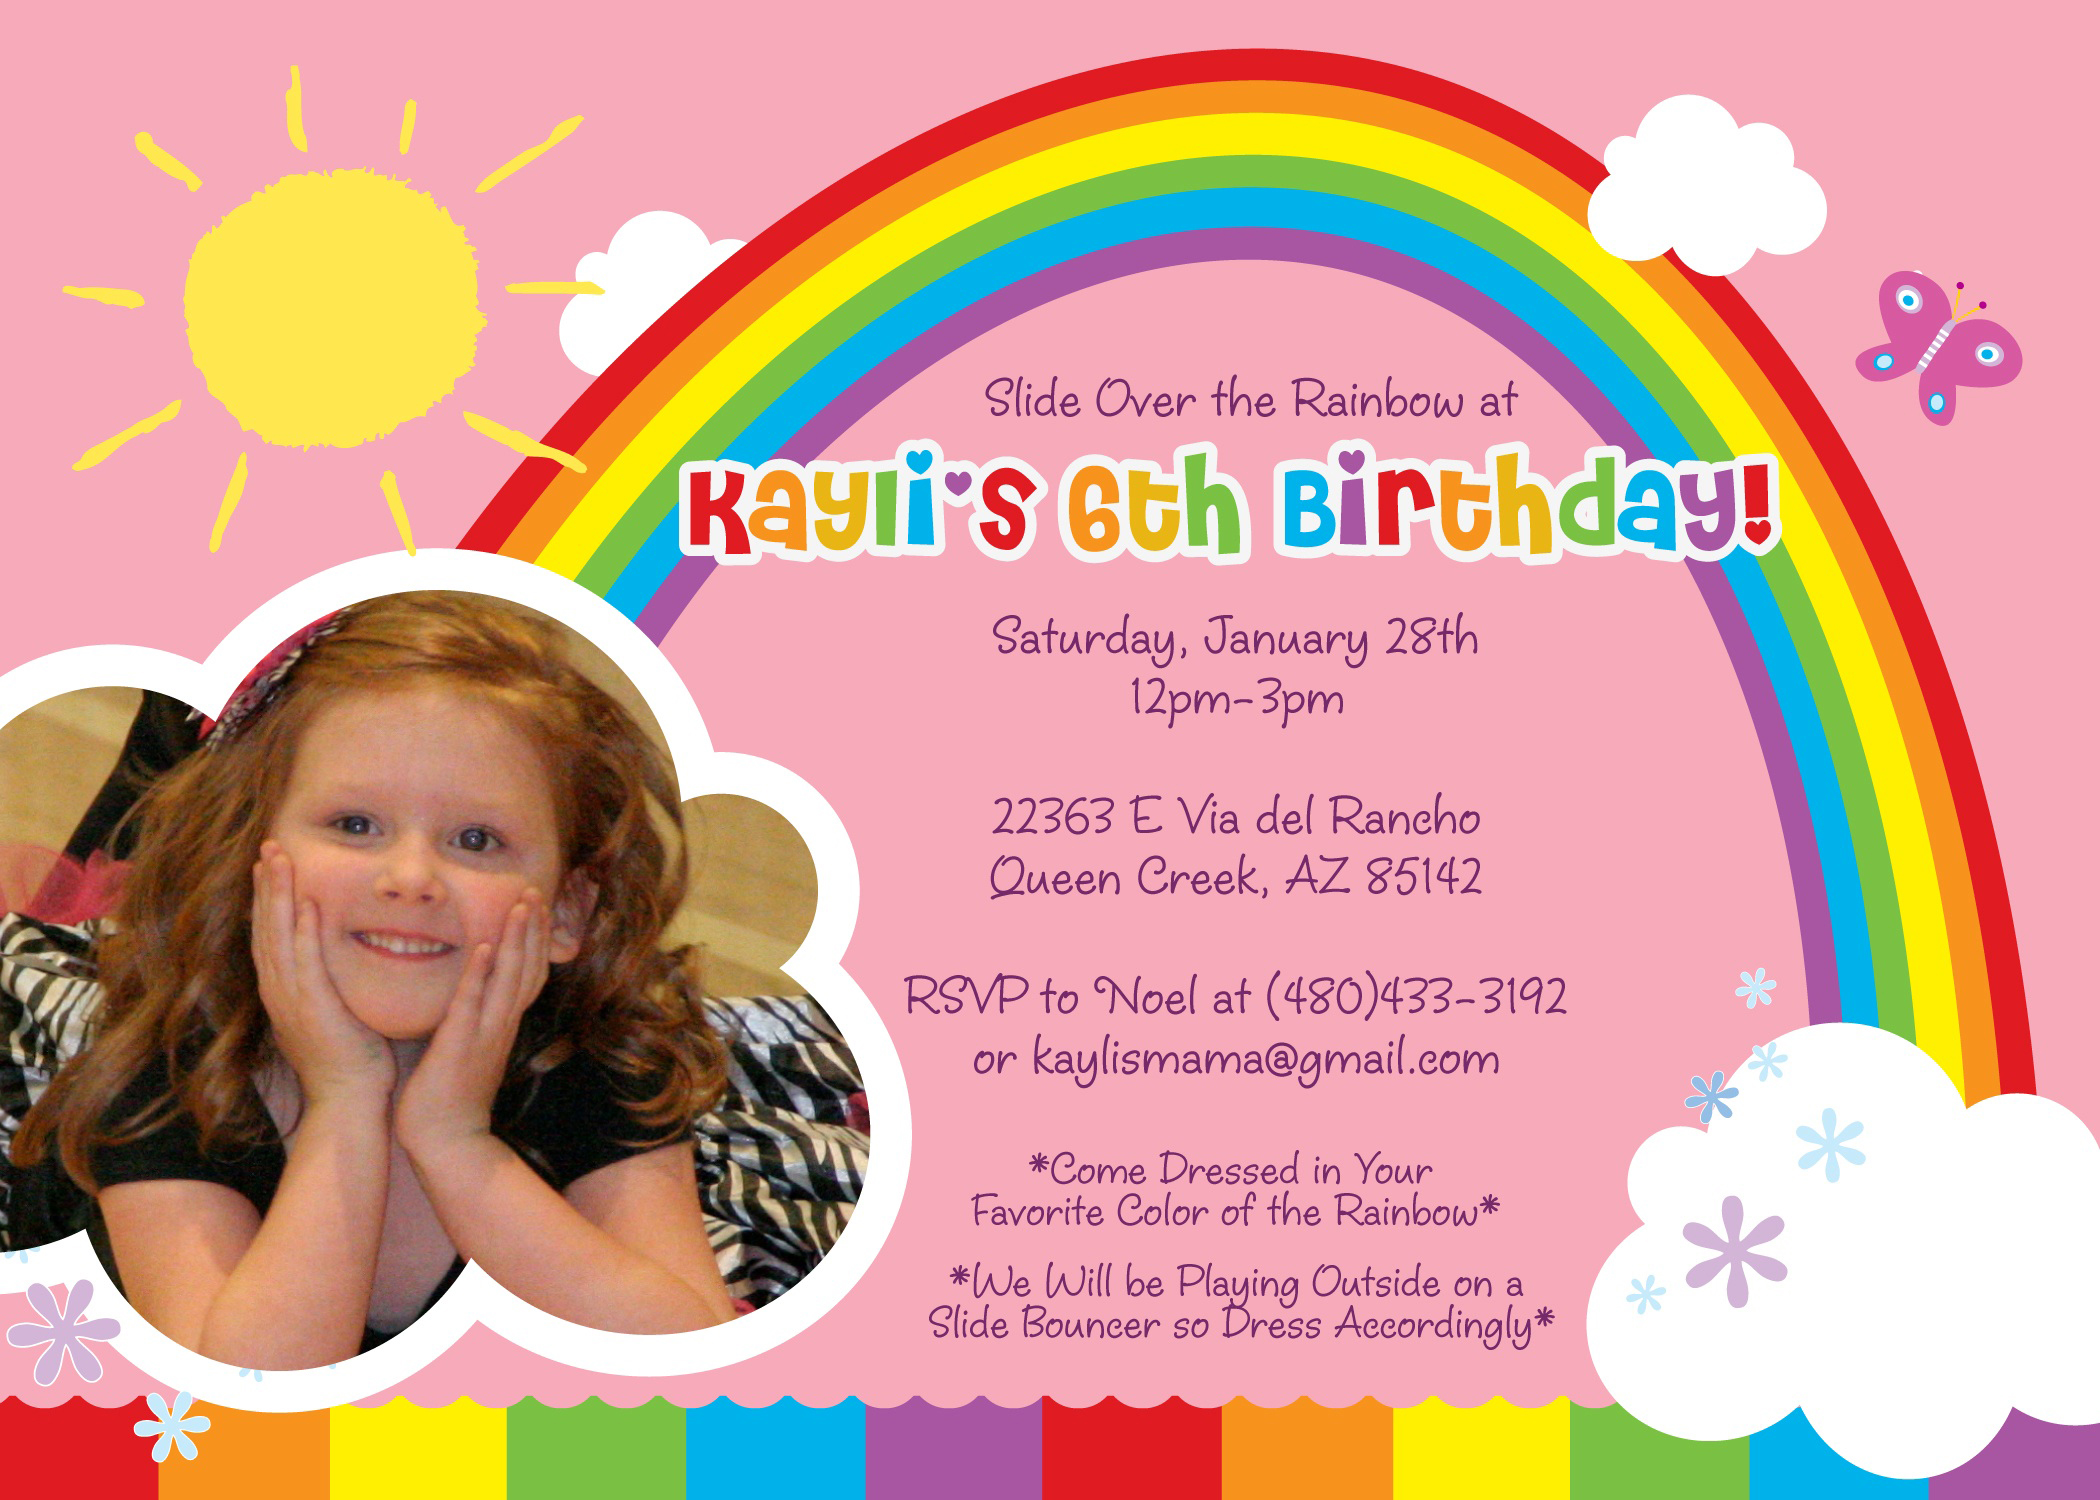 5th birthday invitation card template ; 5Th-Birthday-Invitation-Cards-Printable-to-inspire-you-how-to-create-the-birthday-Card-with-the-best-way-17